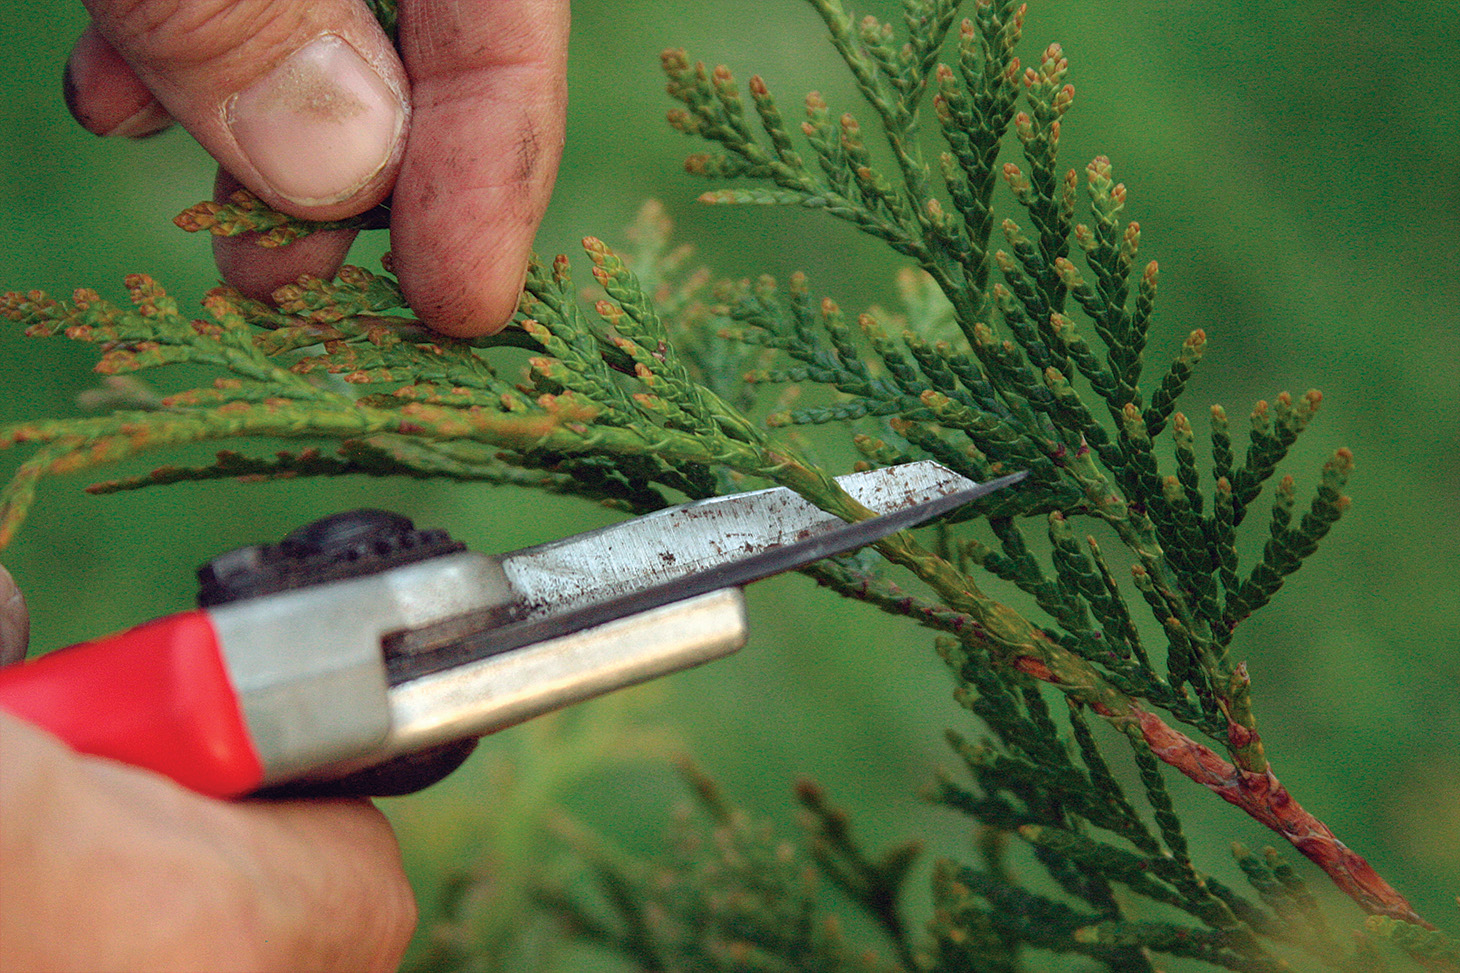 snip back branch tips to prune conifers